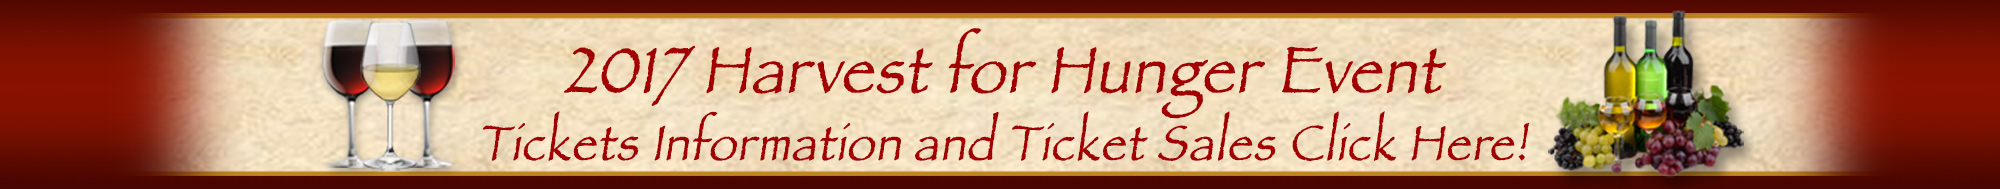 2017 Harvest for Hunger Wine Tasting and Live Auction Event